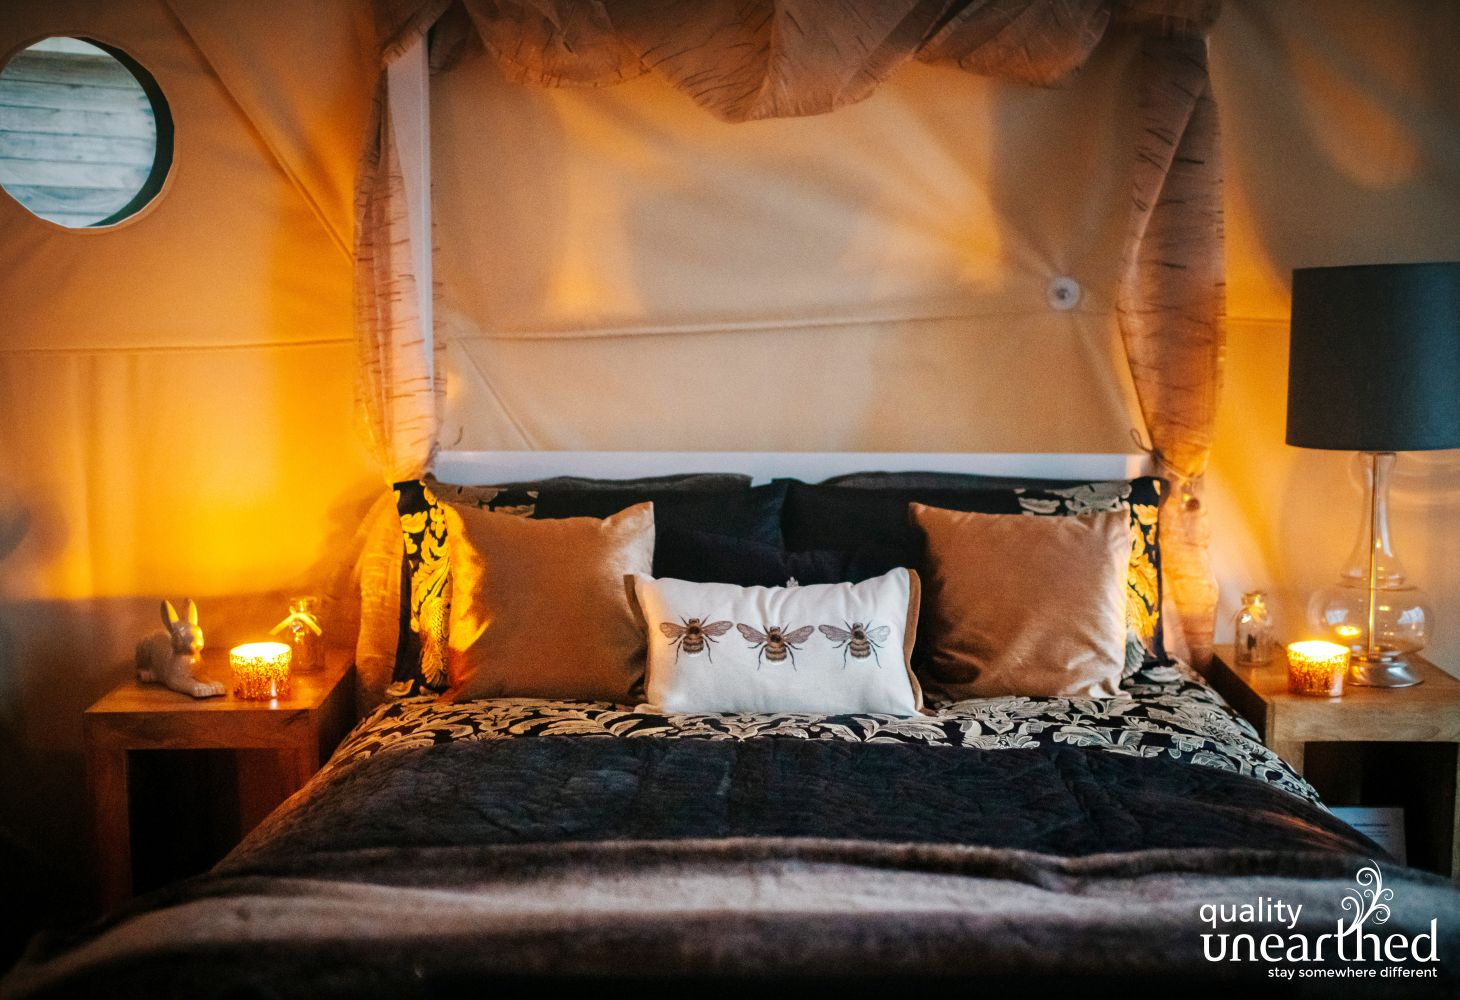 A cosy, romantic atmosphere with tealights inside the luxury glamping geodome